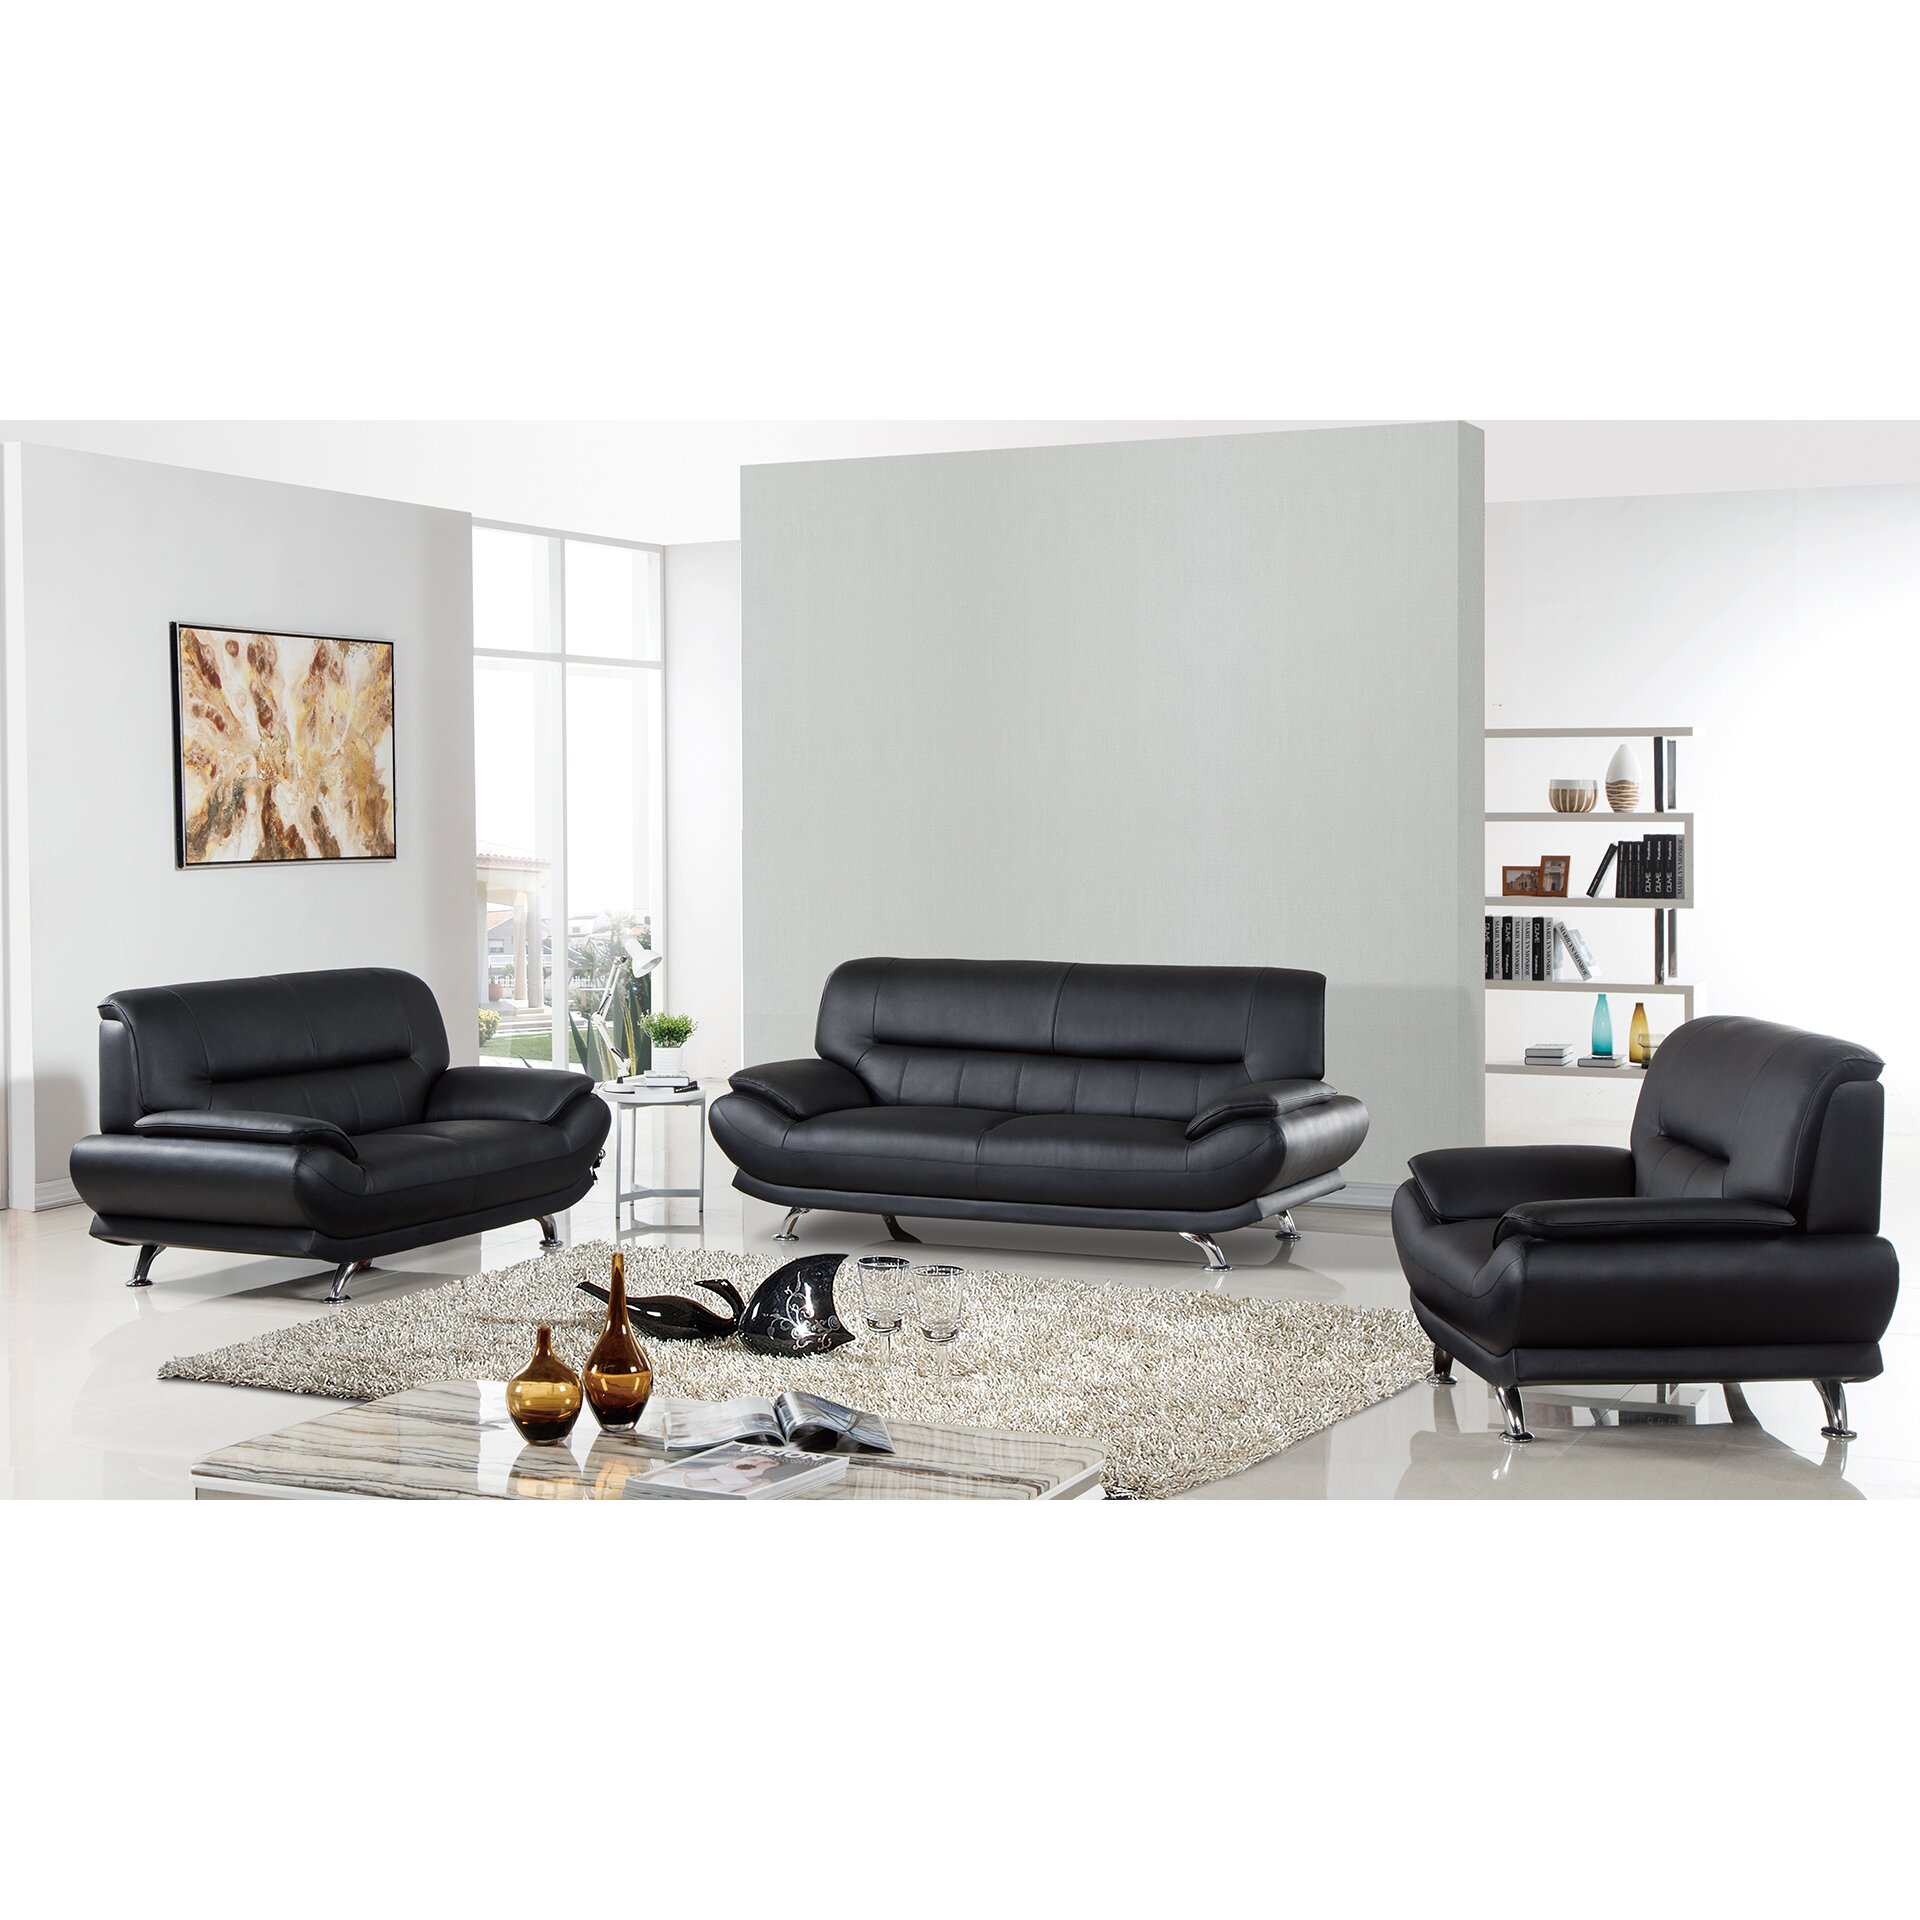 international trading inc arcadia 3 piece leather living room set